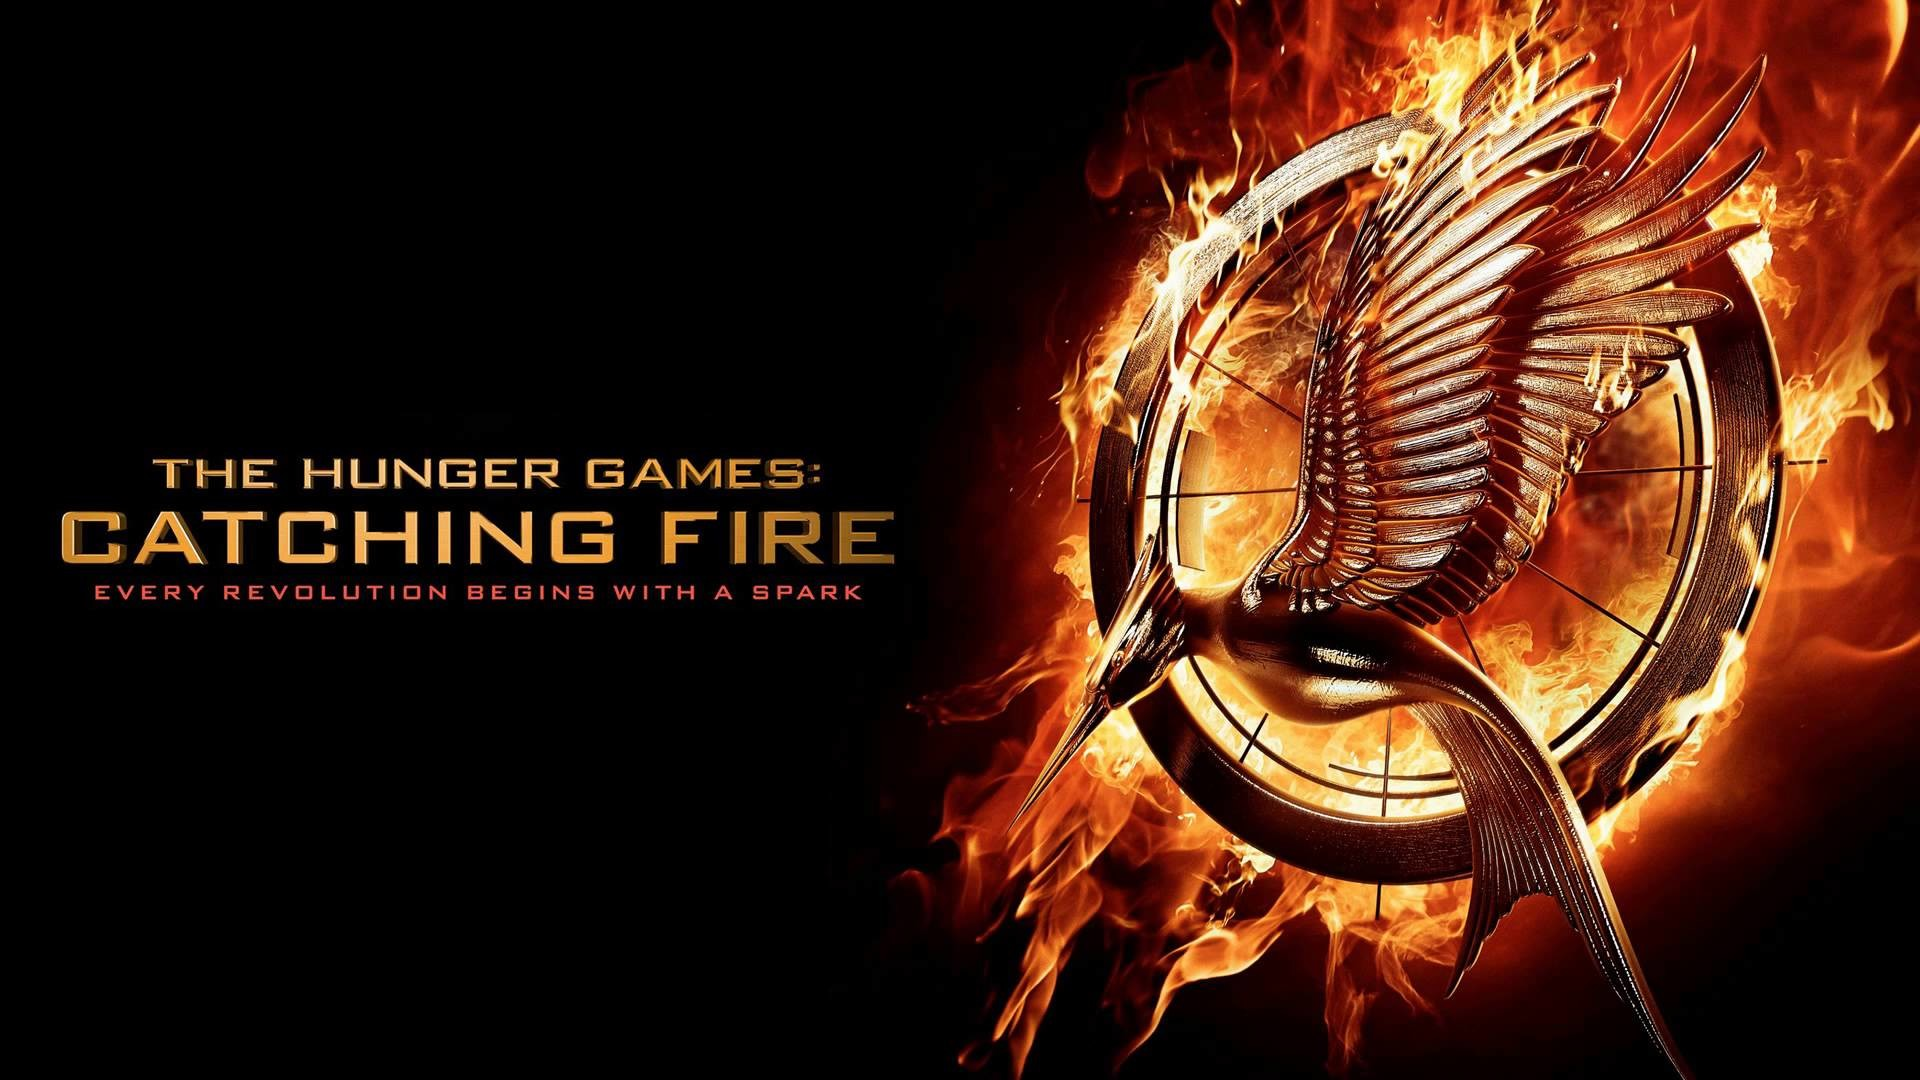 1920x1080 Soundtrack The Hunger Games Catching Fire (Theme Song) - Trailer Music The Hunger  Games